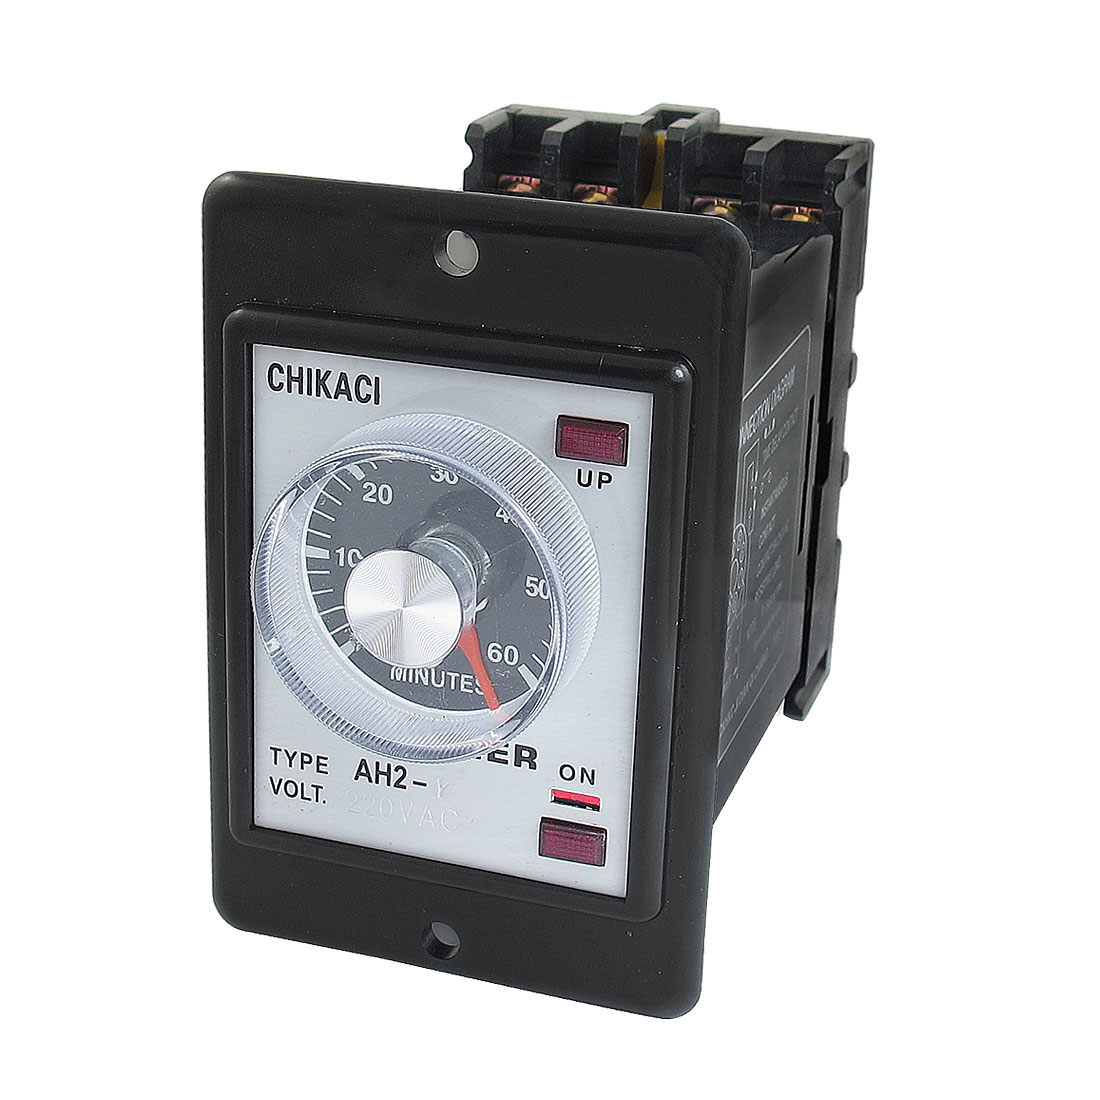 AH2-Y AC 220V 8-Pin DPDT 0-60 Minutes Power on Delay Timer Time Relay w Socket